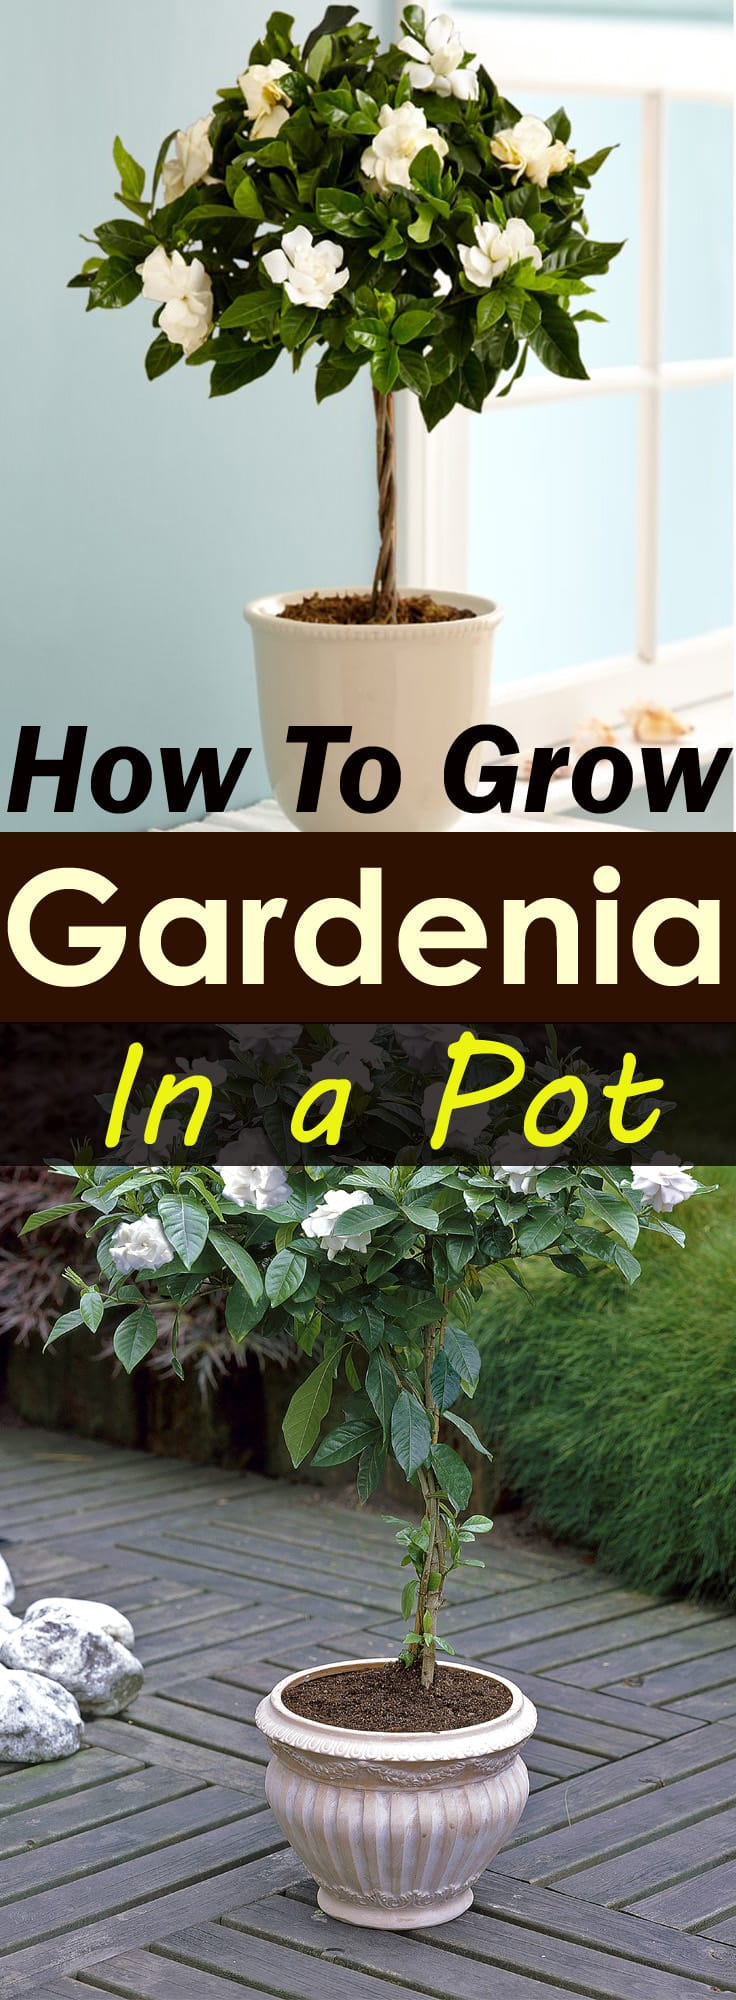 How To Grow It And How To Use It For: Gardenia Tree Care And How To